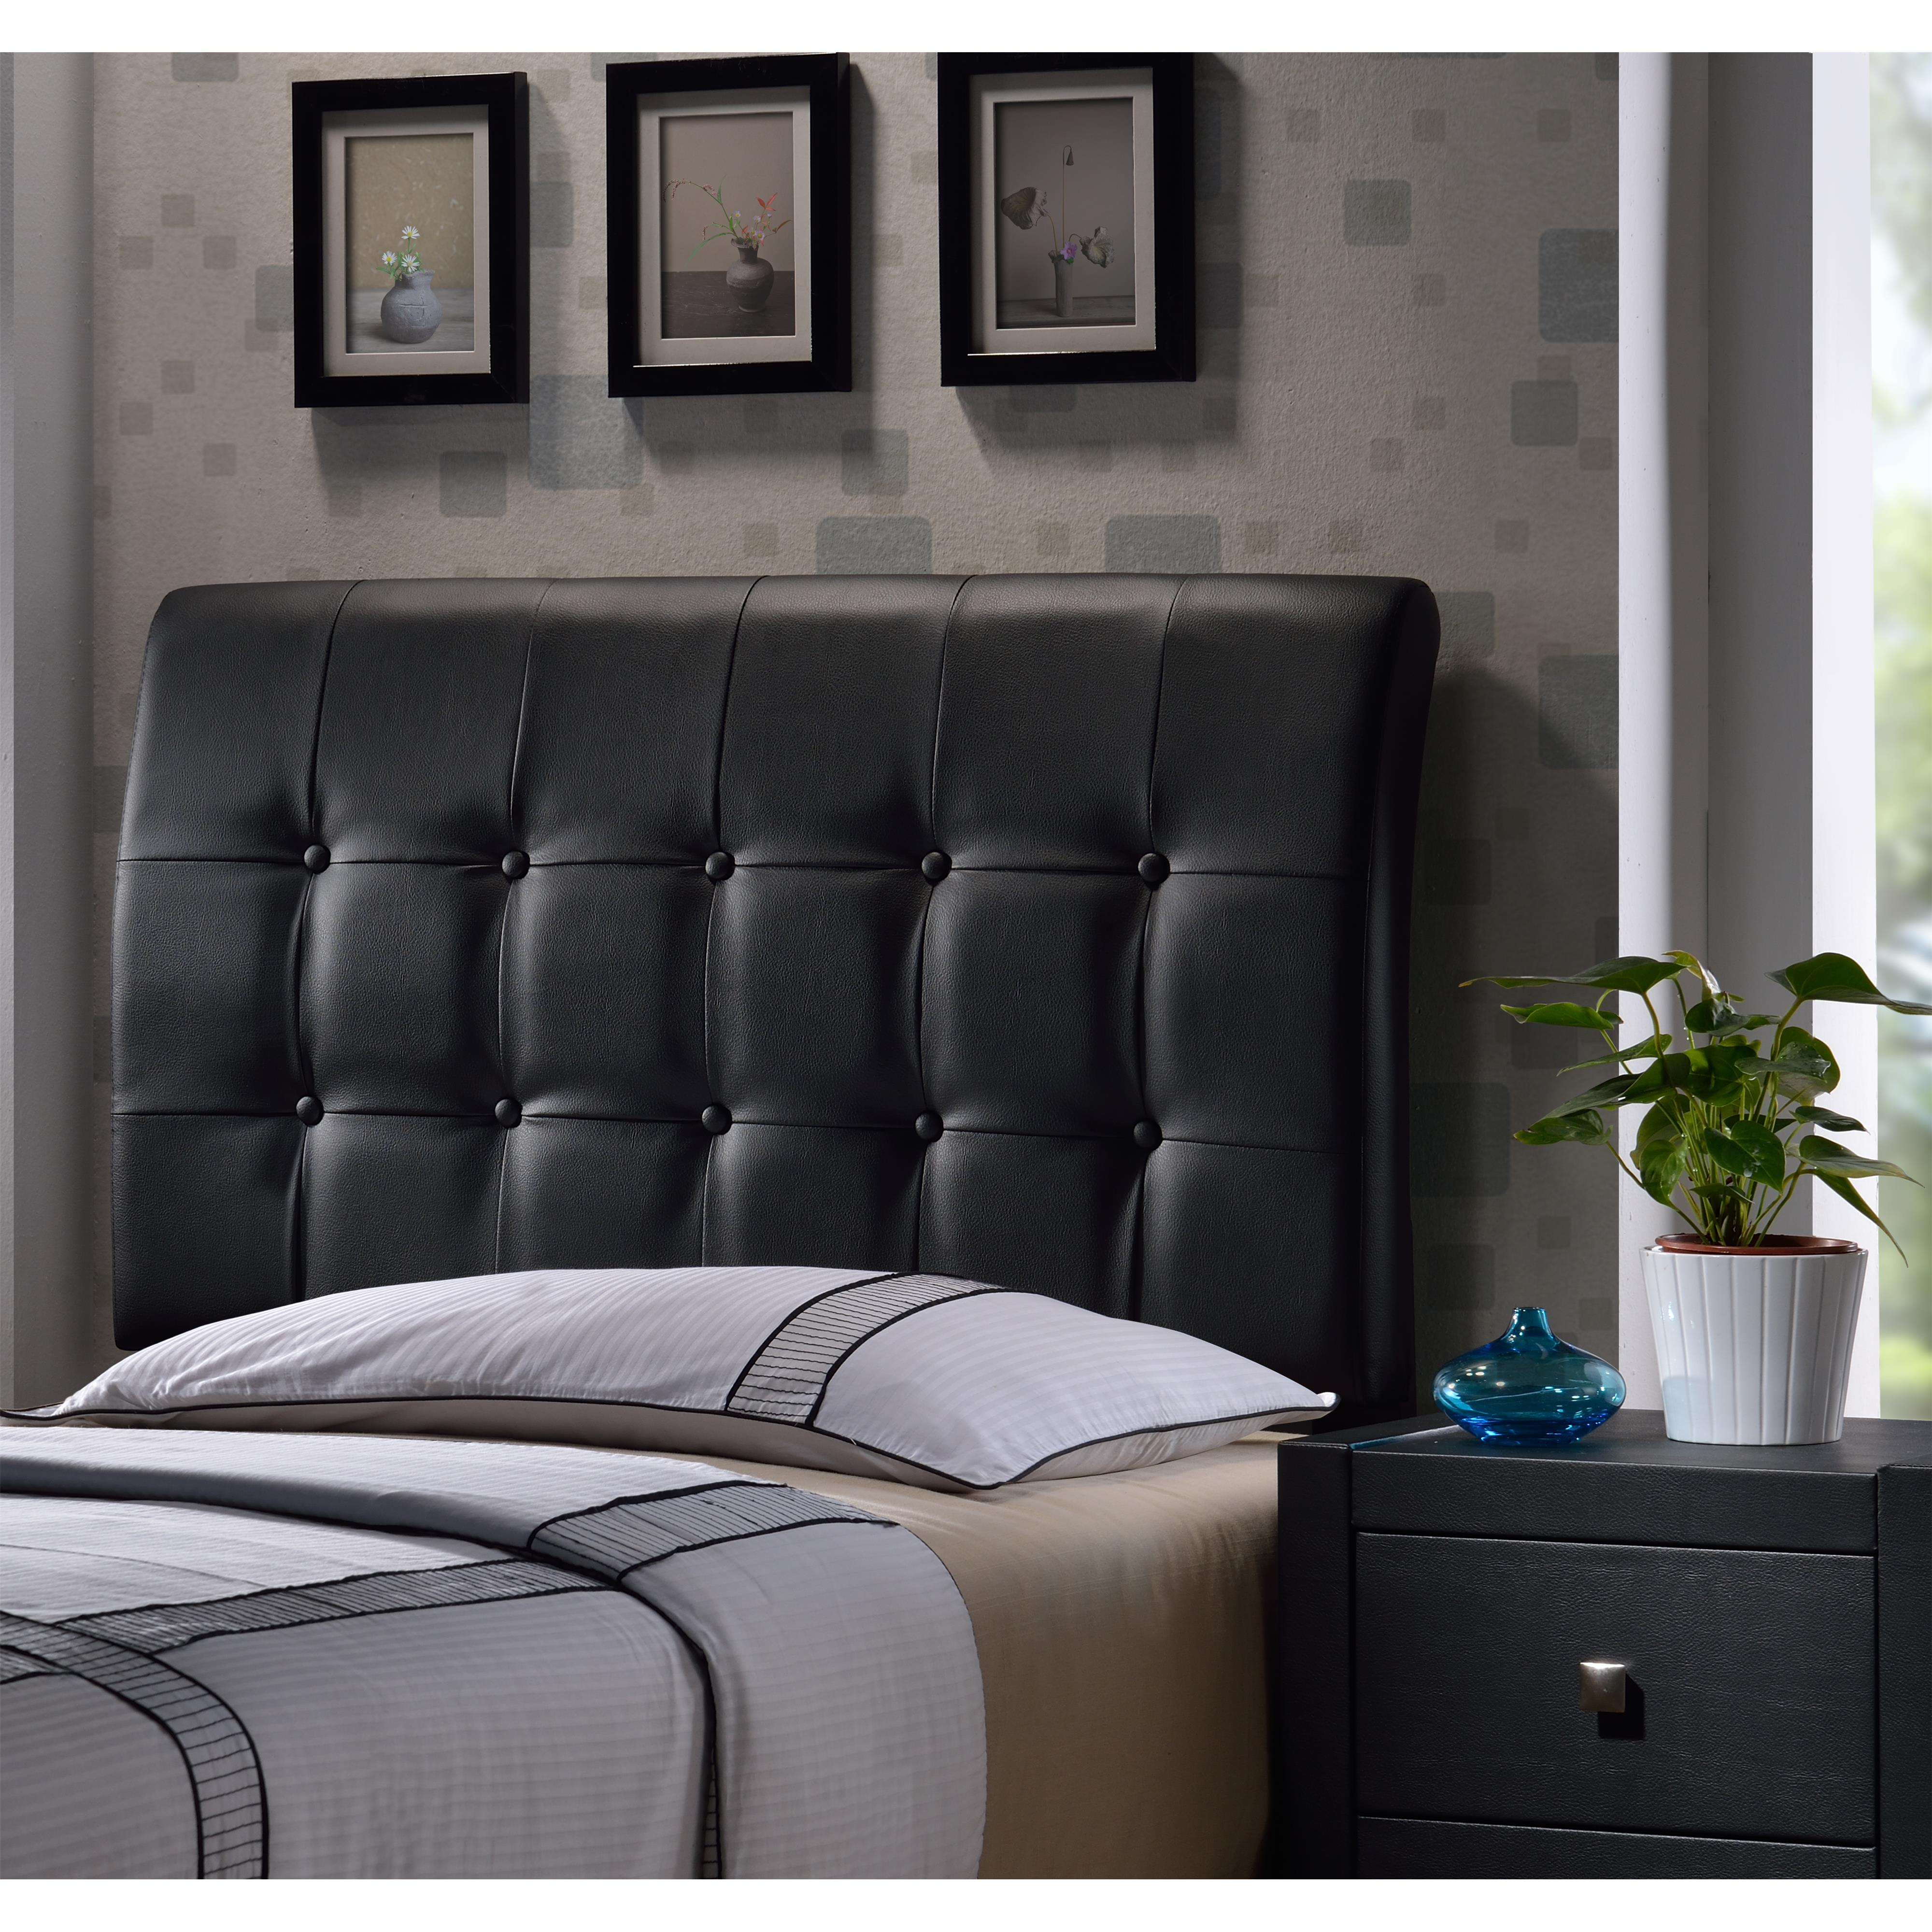 Hillsdale Upholstered Beds Lusso Full Headboard - Item Number: 1281-470